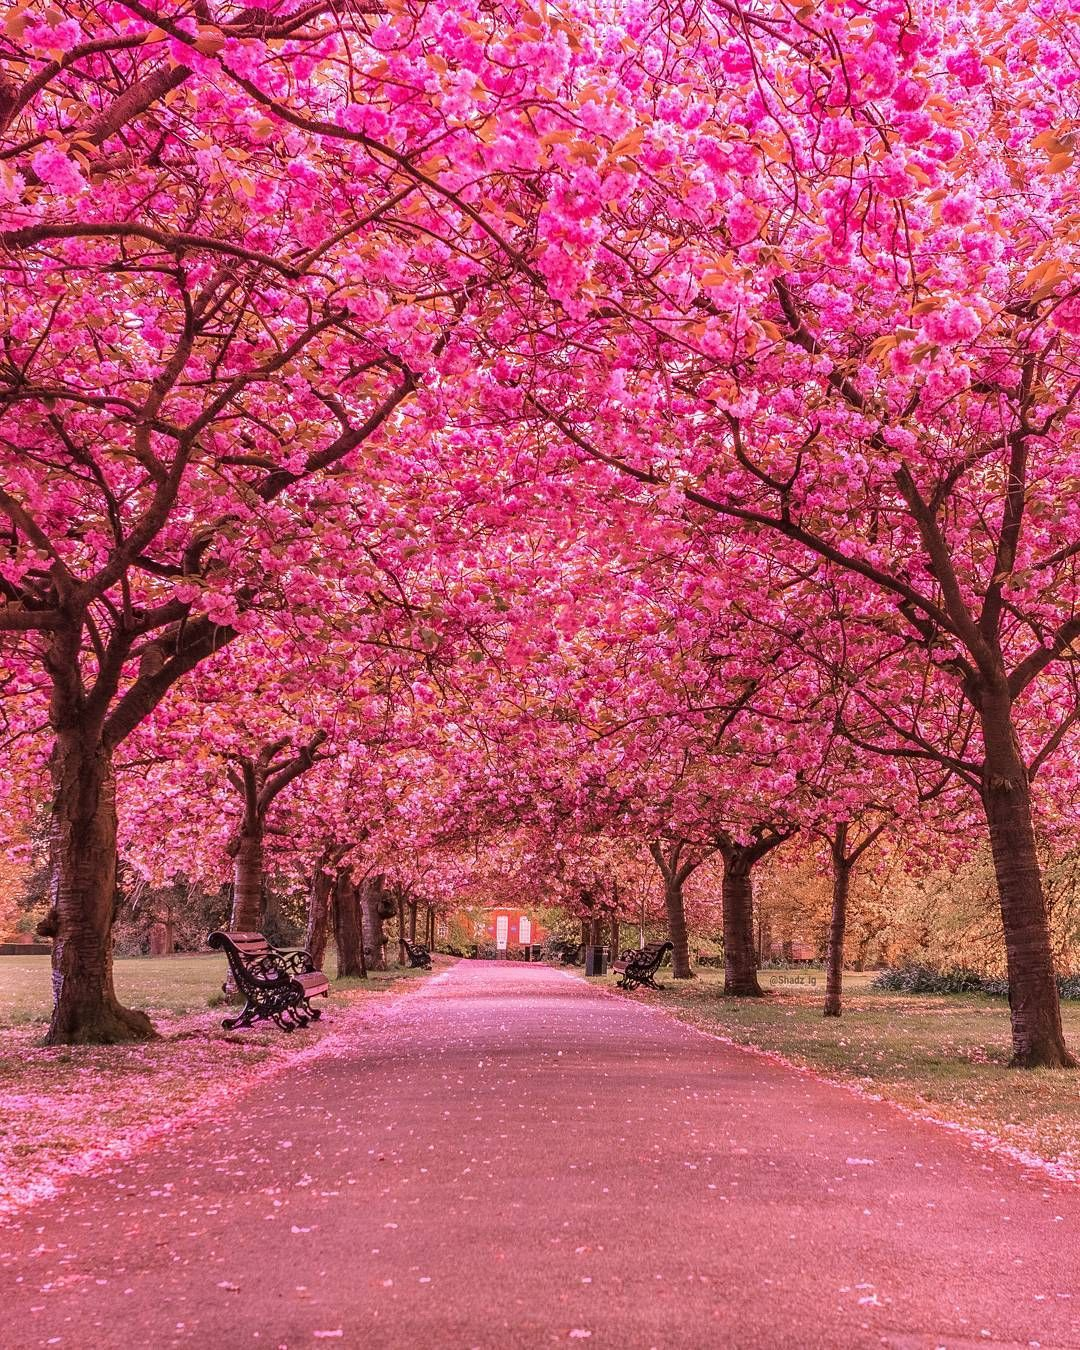 1 942 Likes 123 Comments Shadzii London Uk Shadz Ig On Instagram Beautiful Cherry Blossom Beautiful Nature Beautiful Landscapes Earth Pictures